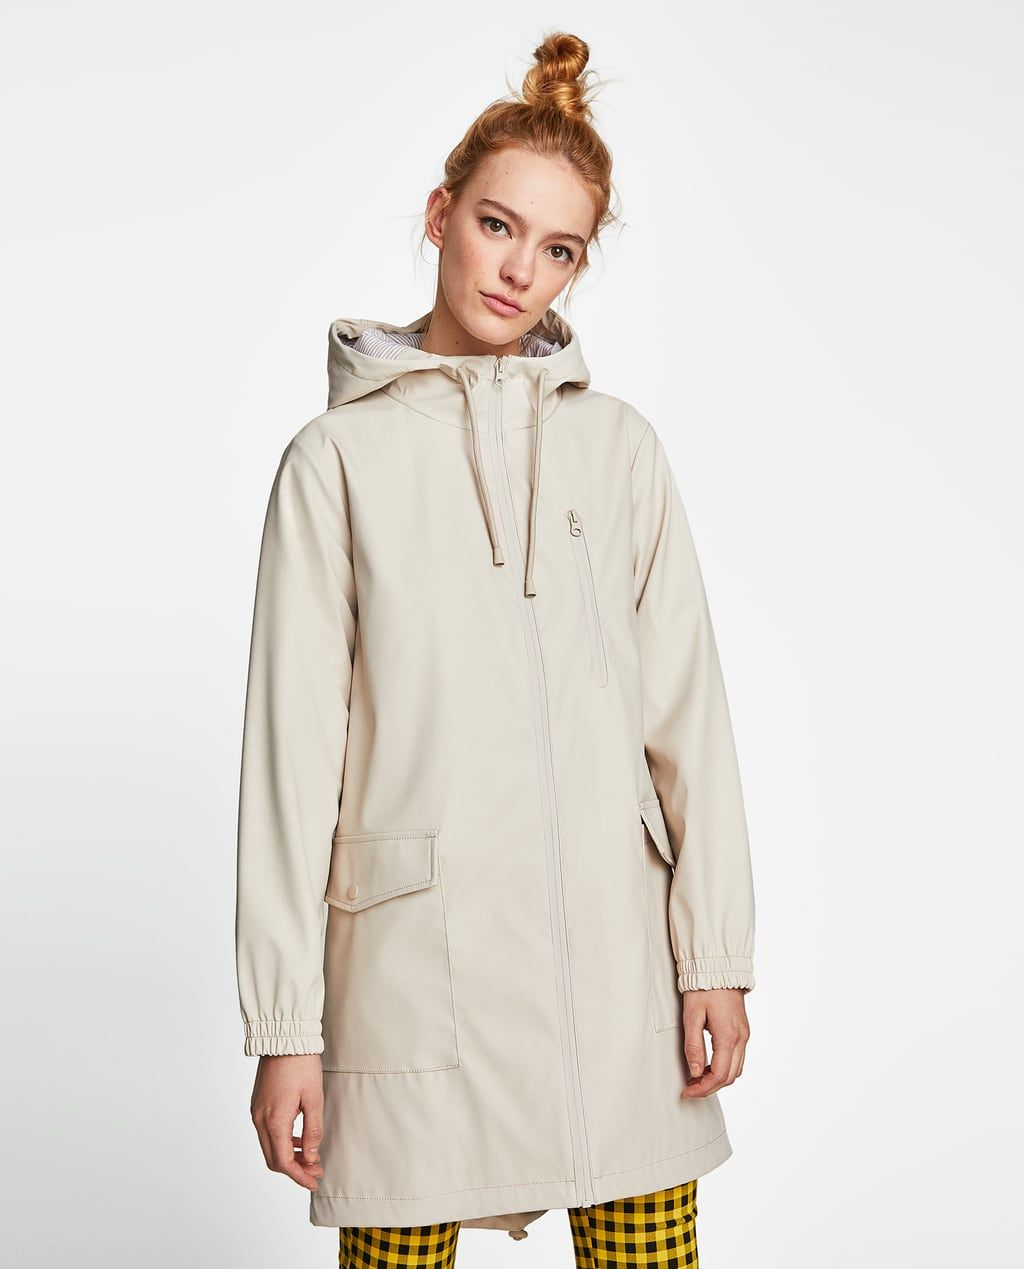 79c45940f7 Image 2 of WATER REPELLENT RUBBERIZED PARKA from Zara | She Wears ...